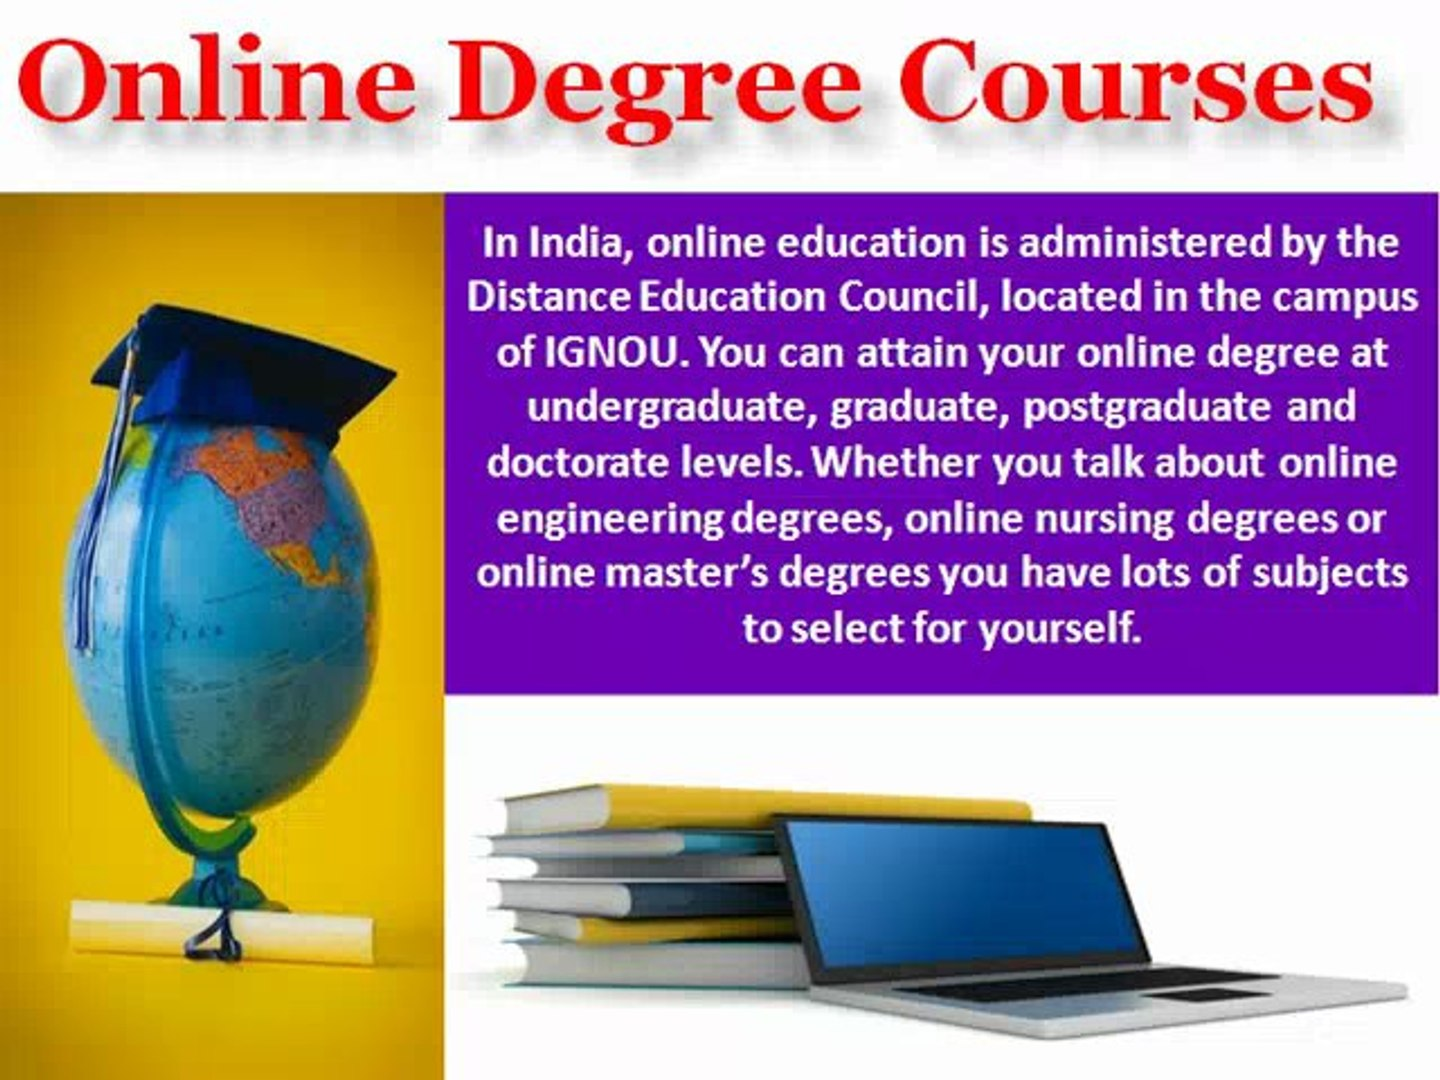 Improve Your Career Growth With Online Degree Courses